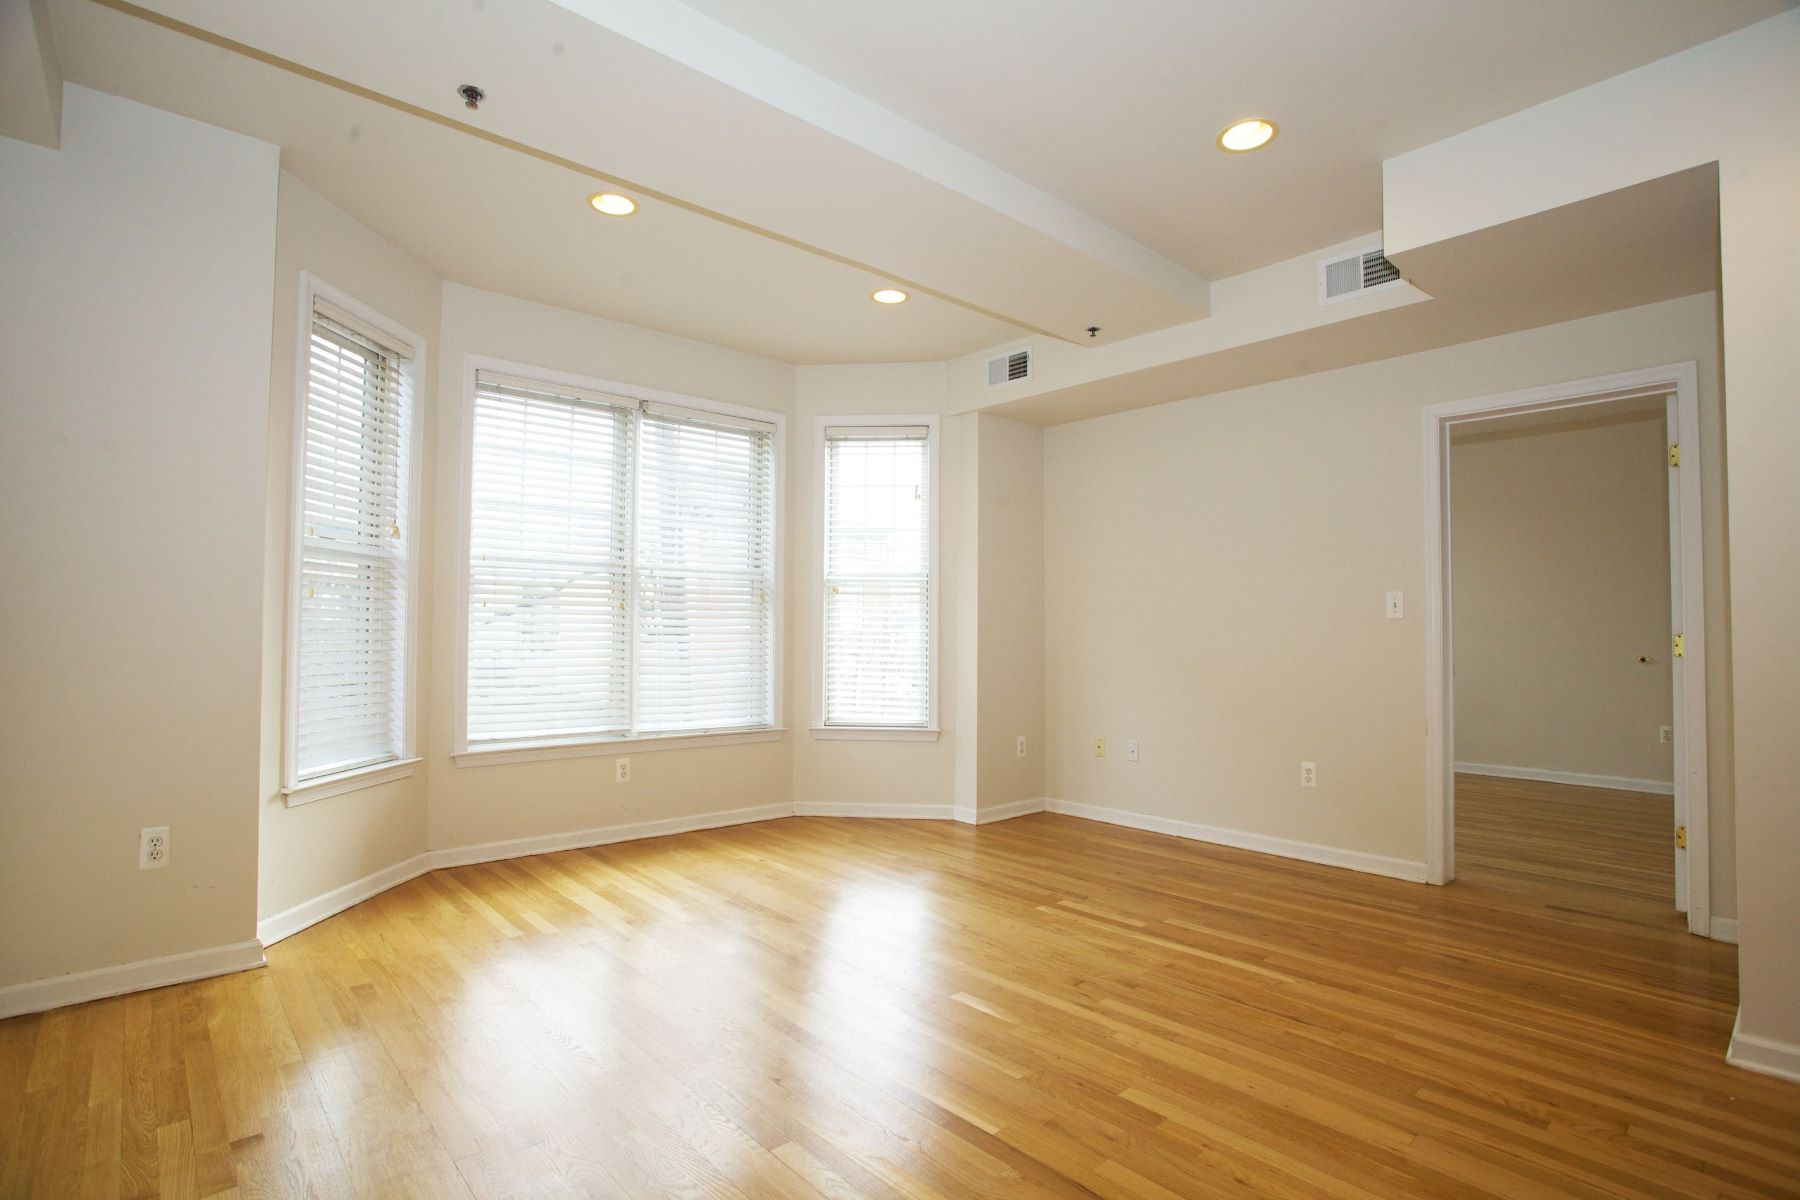 Condominium for Rent at Hoboken Two Bedroom Two Bath with PARKING 704 Clinton Street #3D Hoboken, New Jersey 07030 United States